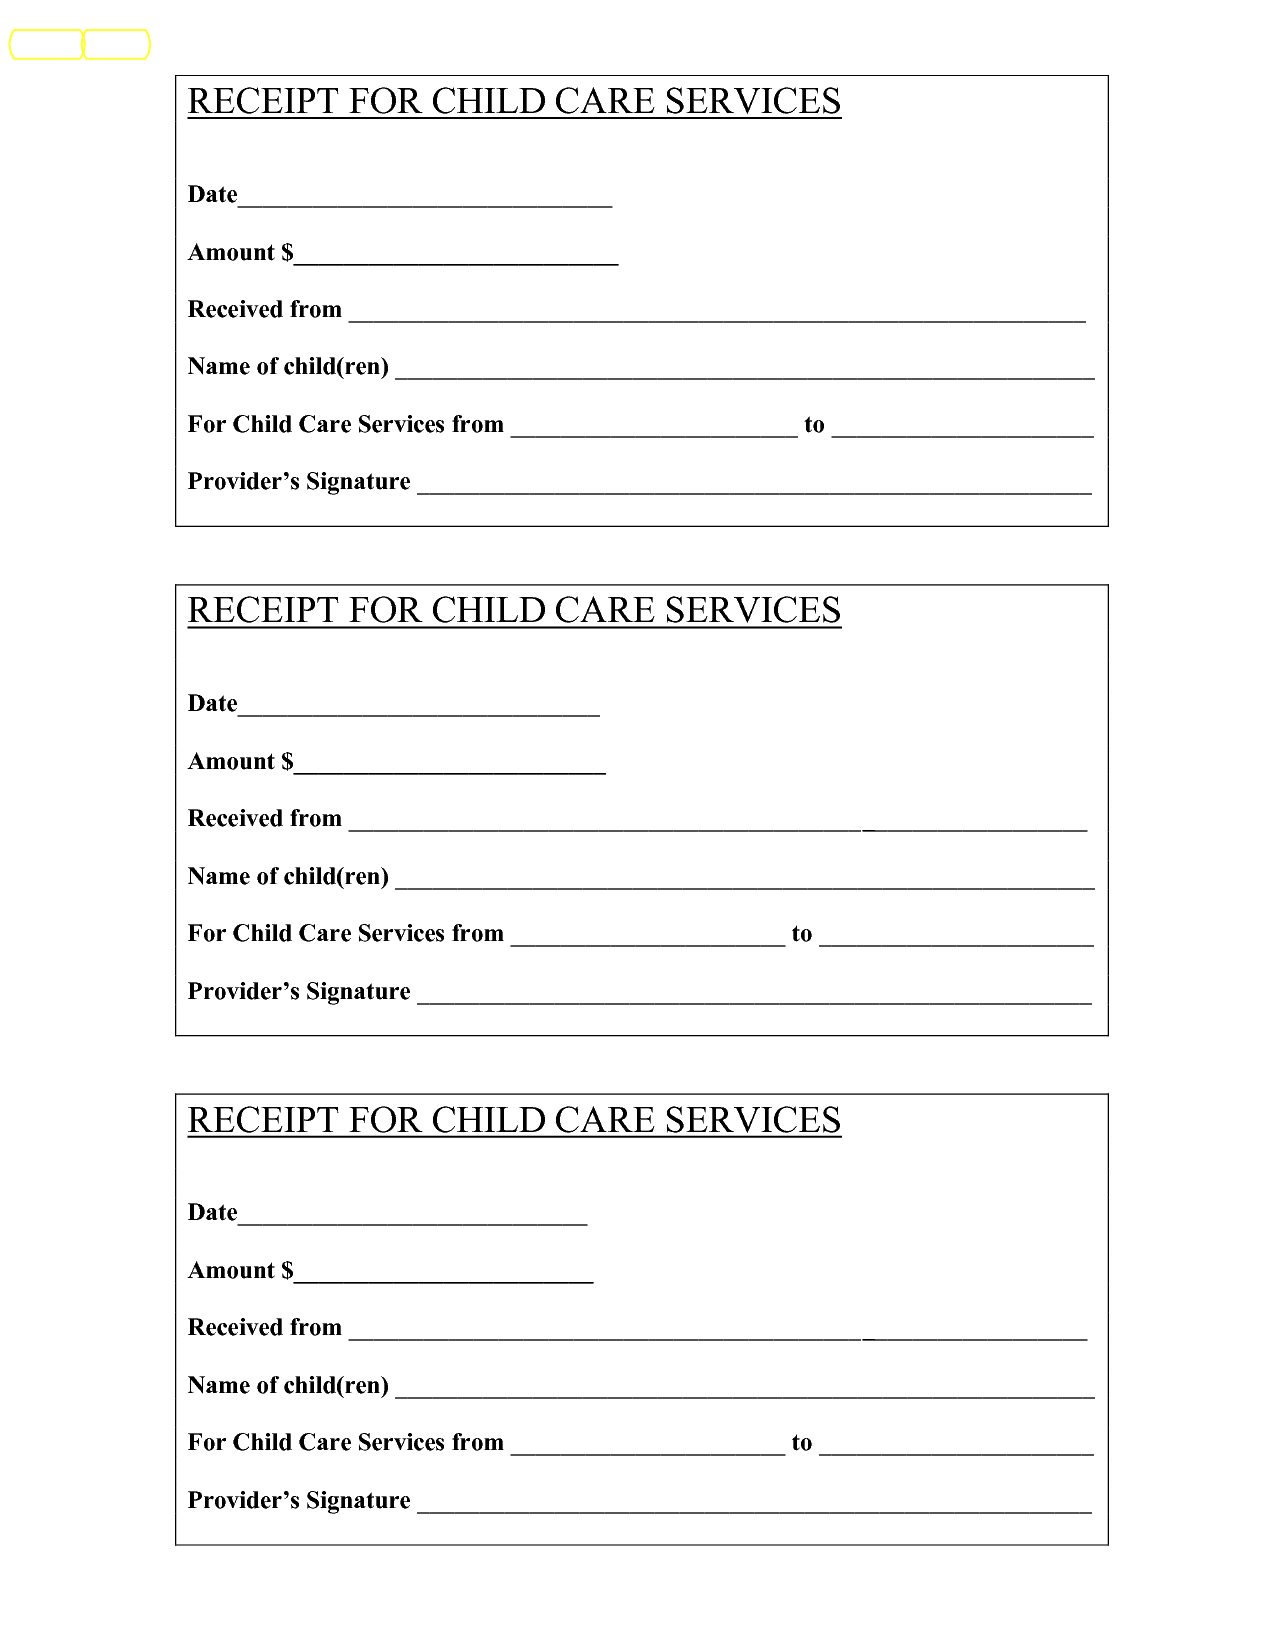 Babysitting Receipt - Bing Images | Baby | Child Care Services, Free - Free Printable Daycare Receipts